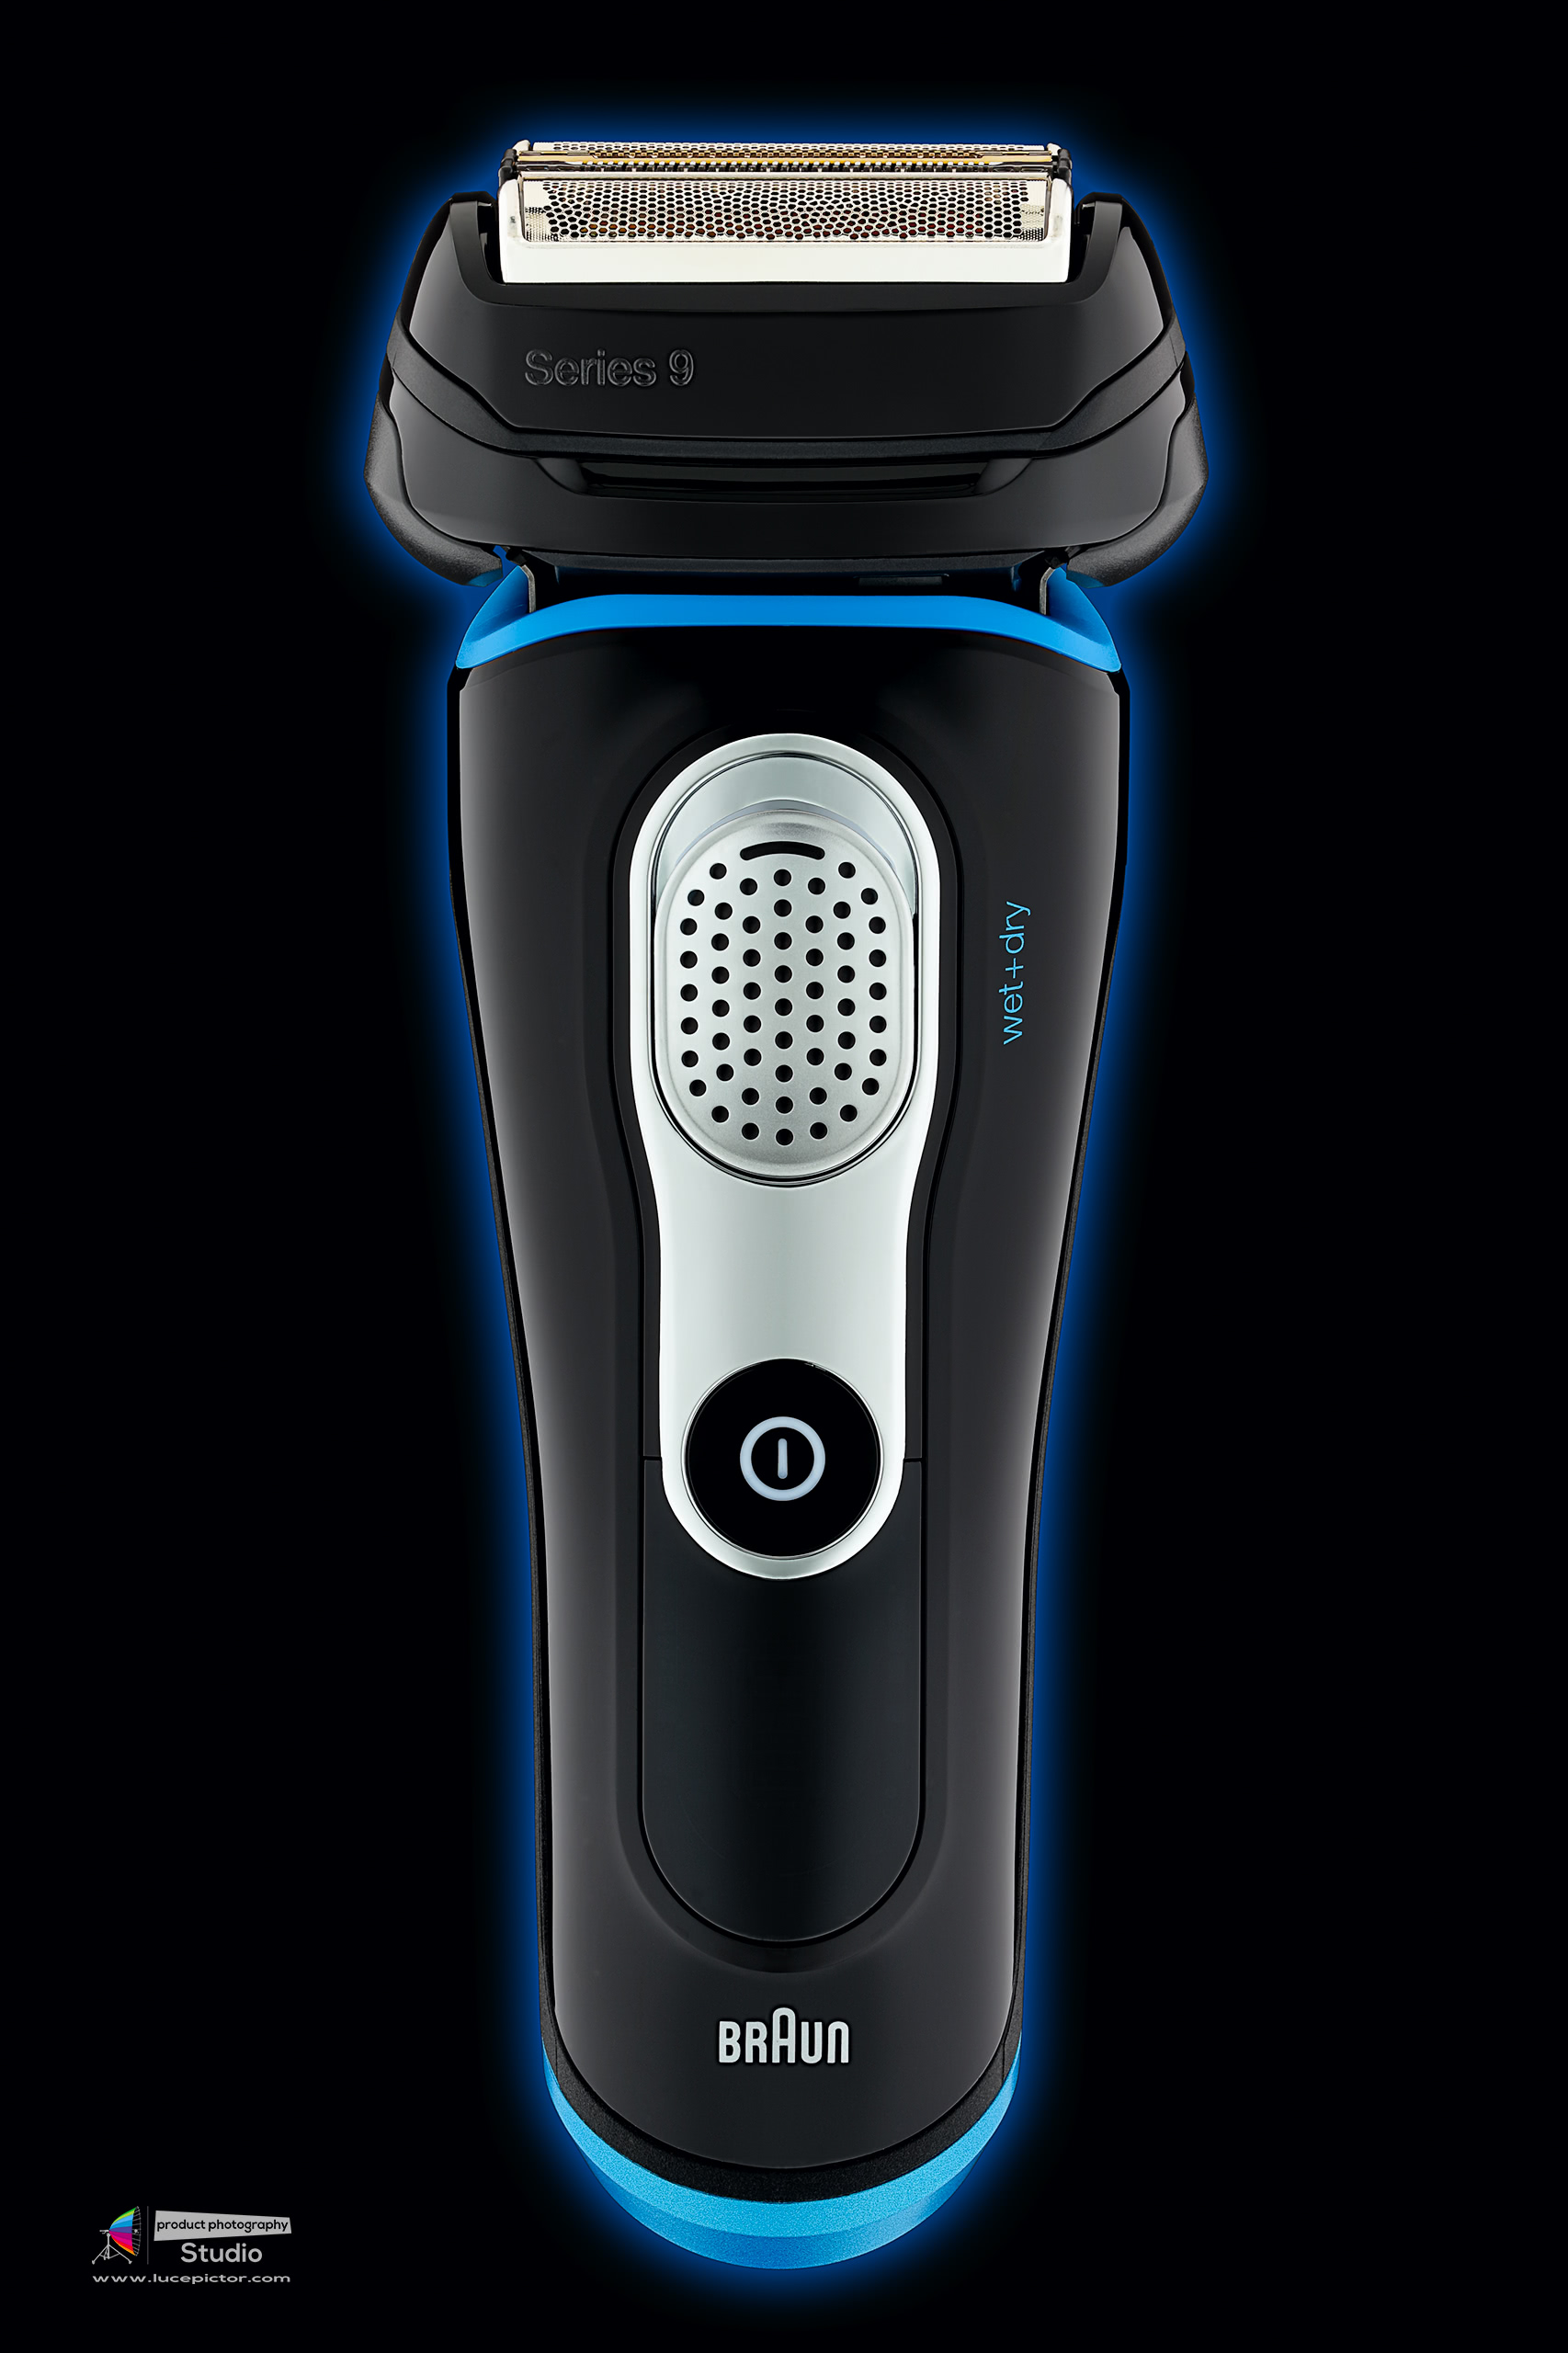 braun shaver product photography